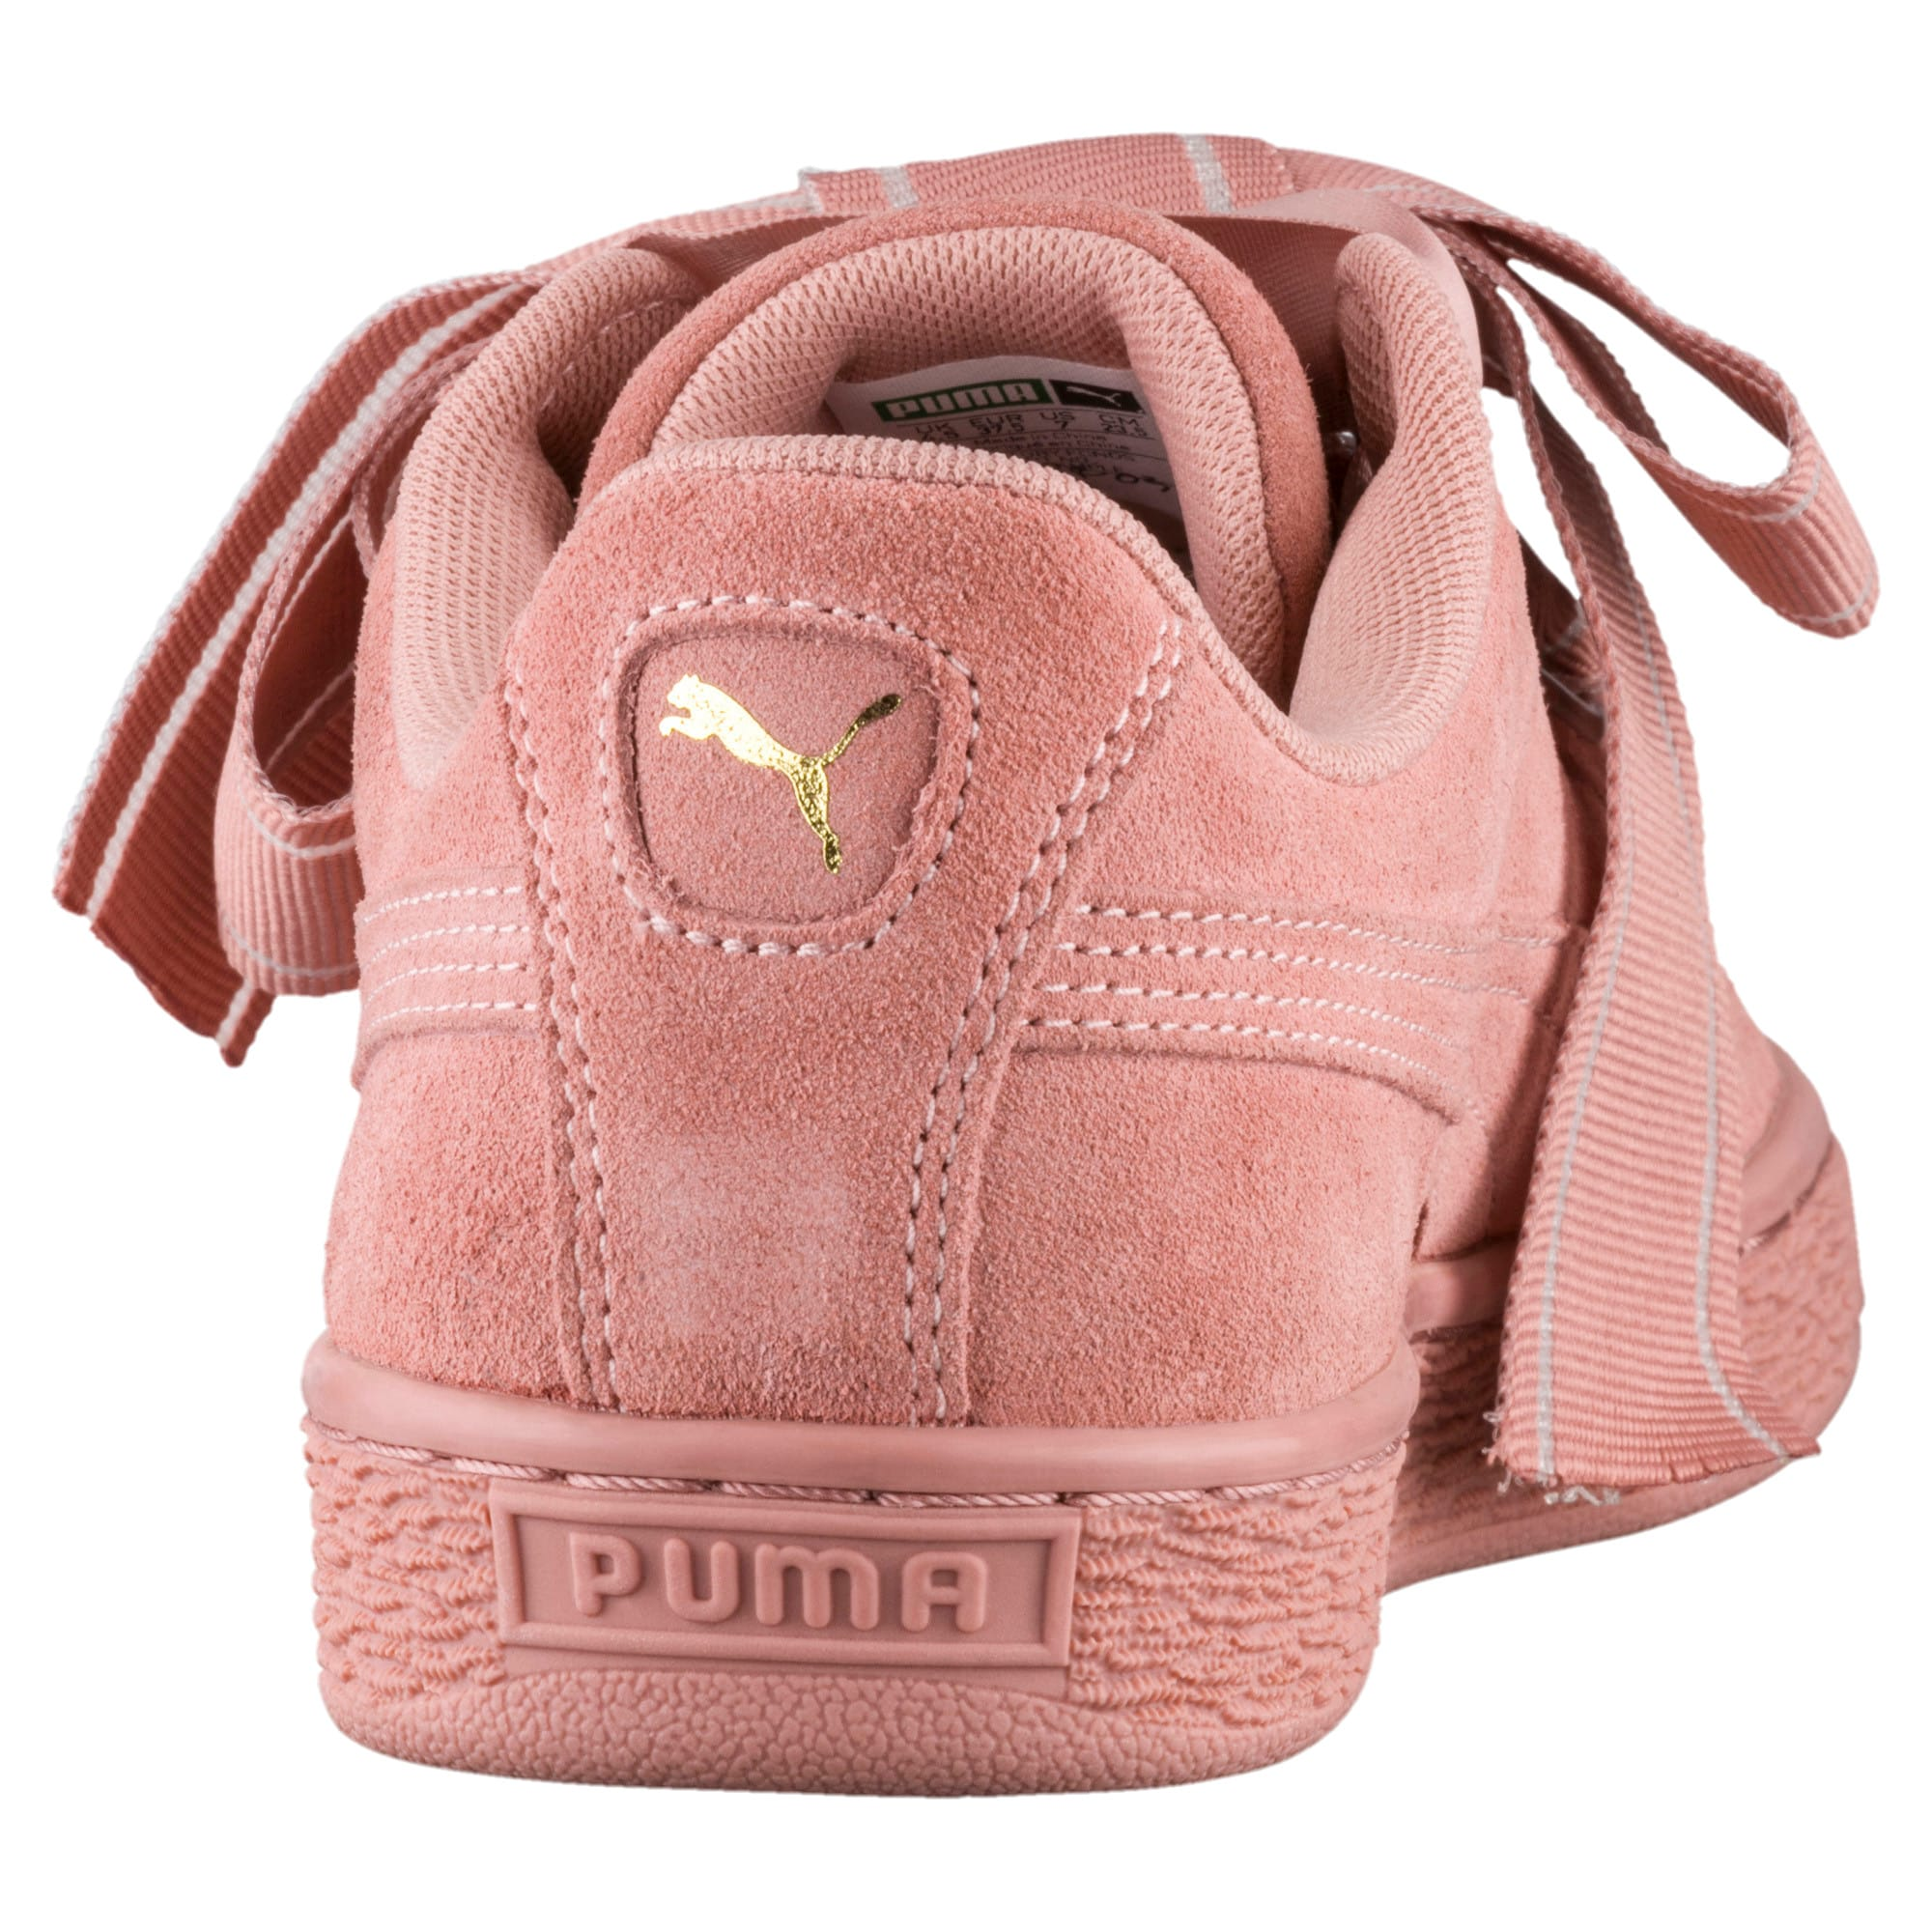 Details about New Womens Puma Pink Suede Heart Satin II Trainers Court Lace Up